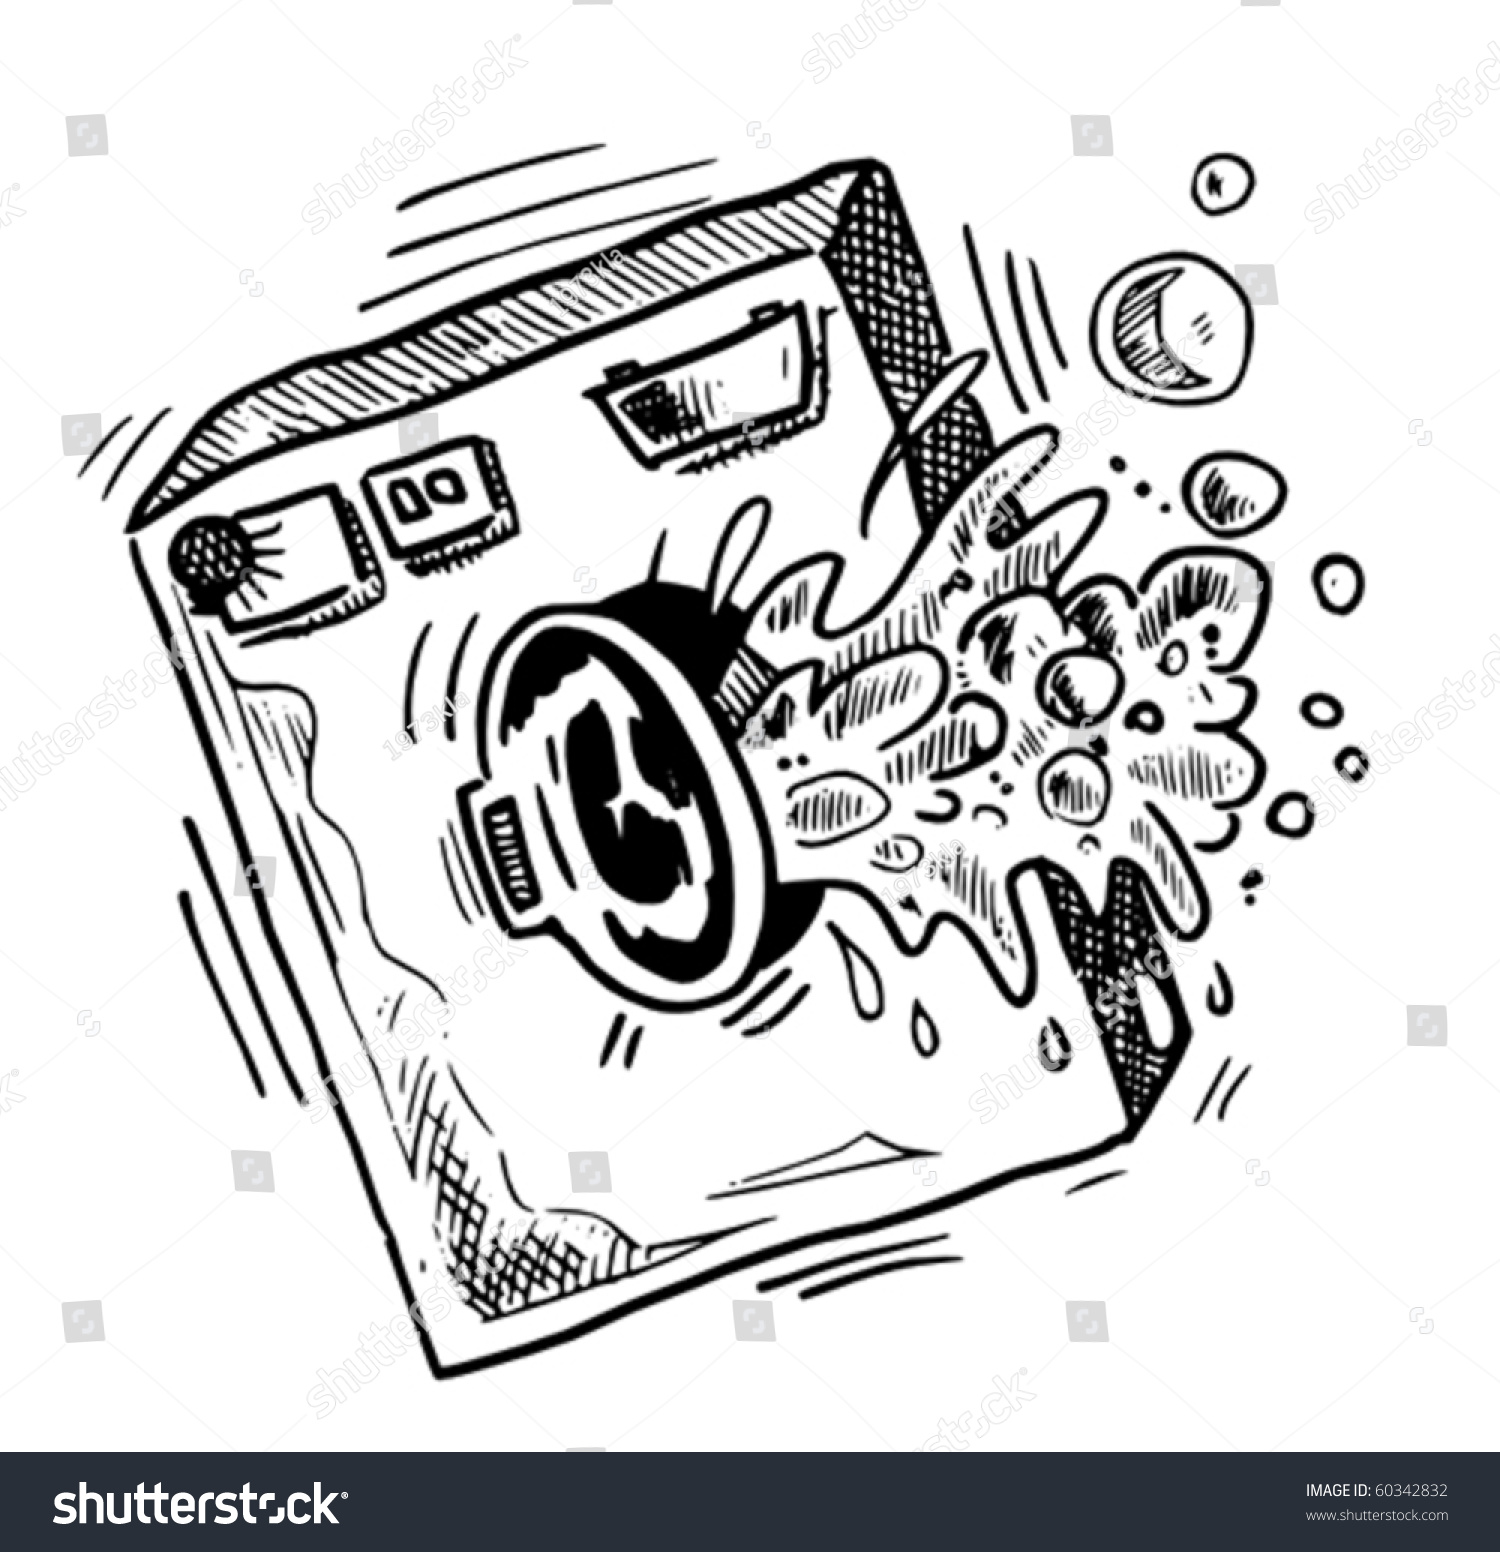 Waschmaschine Kaputt Comic Style Washing Machine Sketch Stock Vector Royalty Free